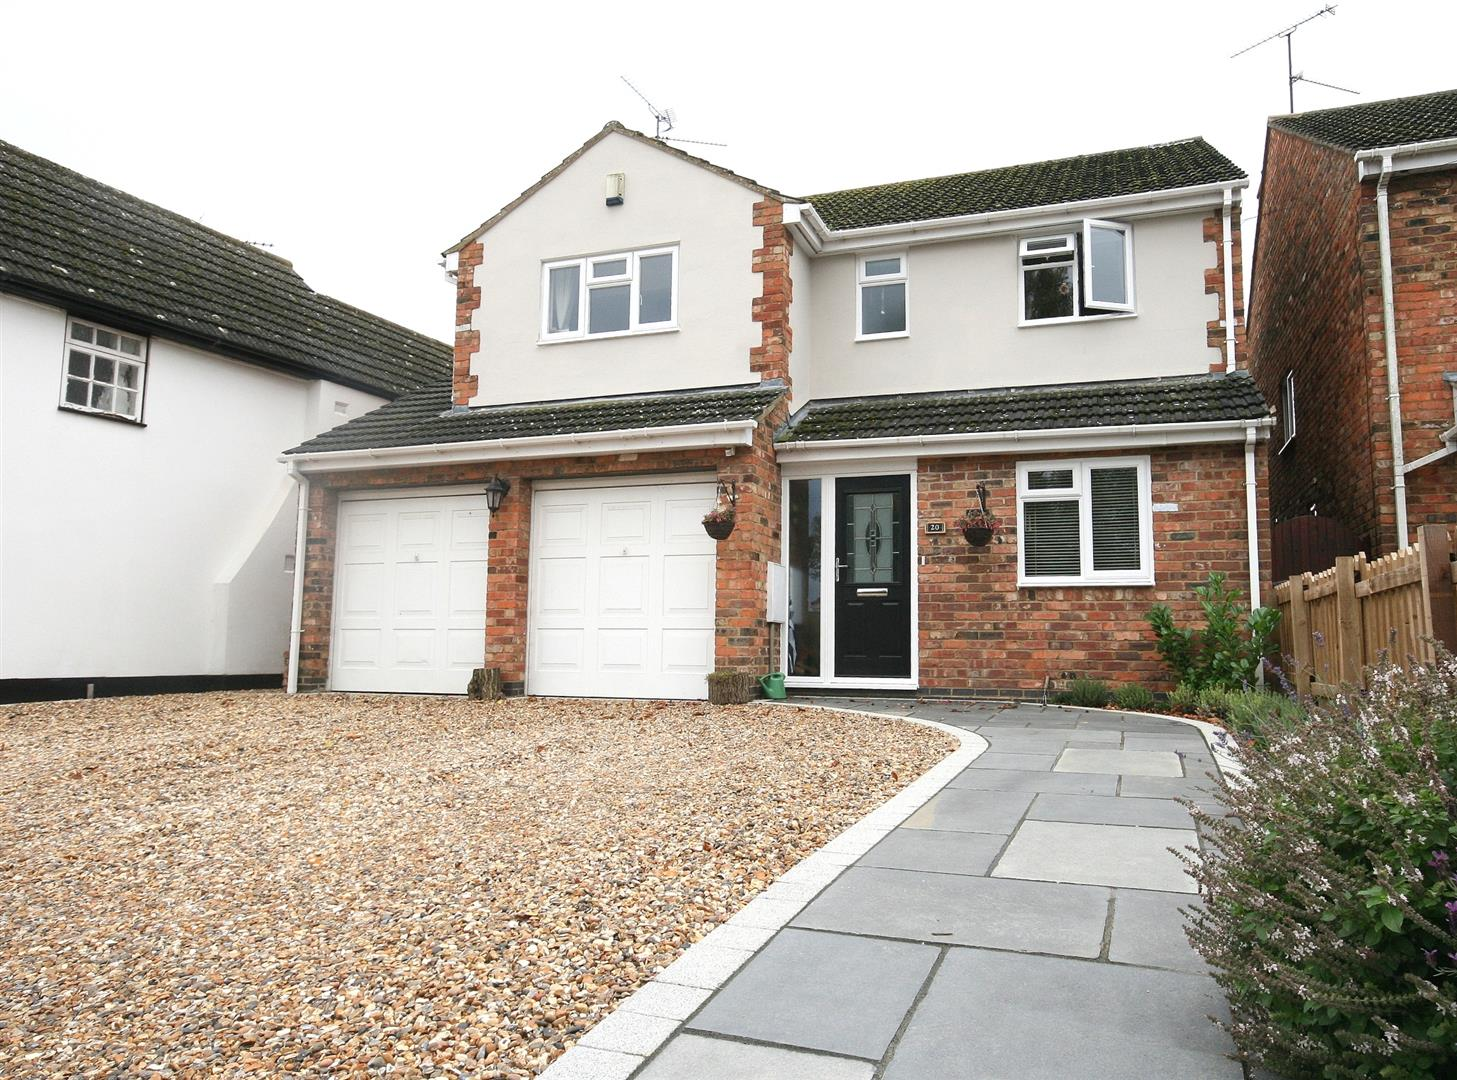 4 Bedrooms Detached House for sale in Wellhead Road, Totternhoe, Beds